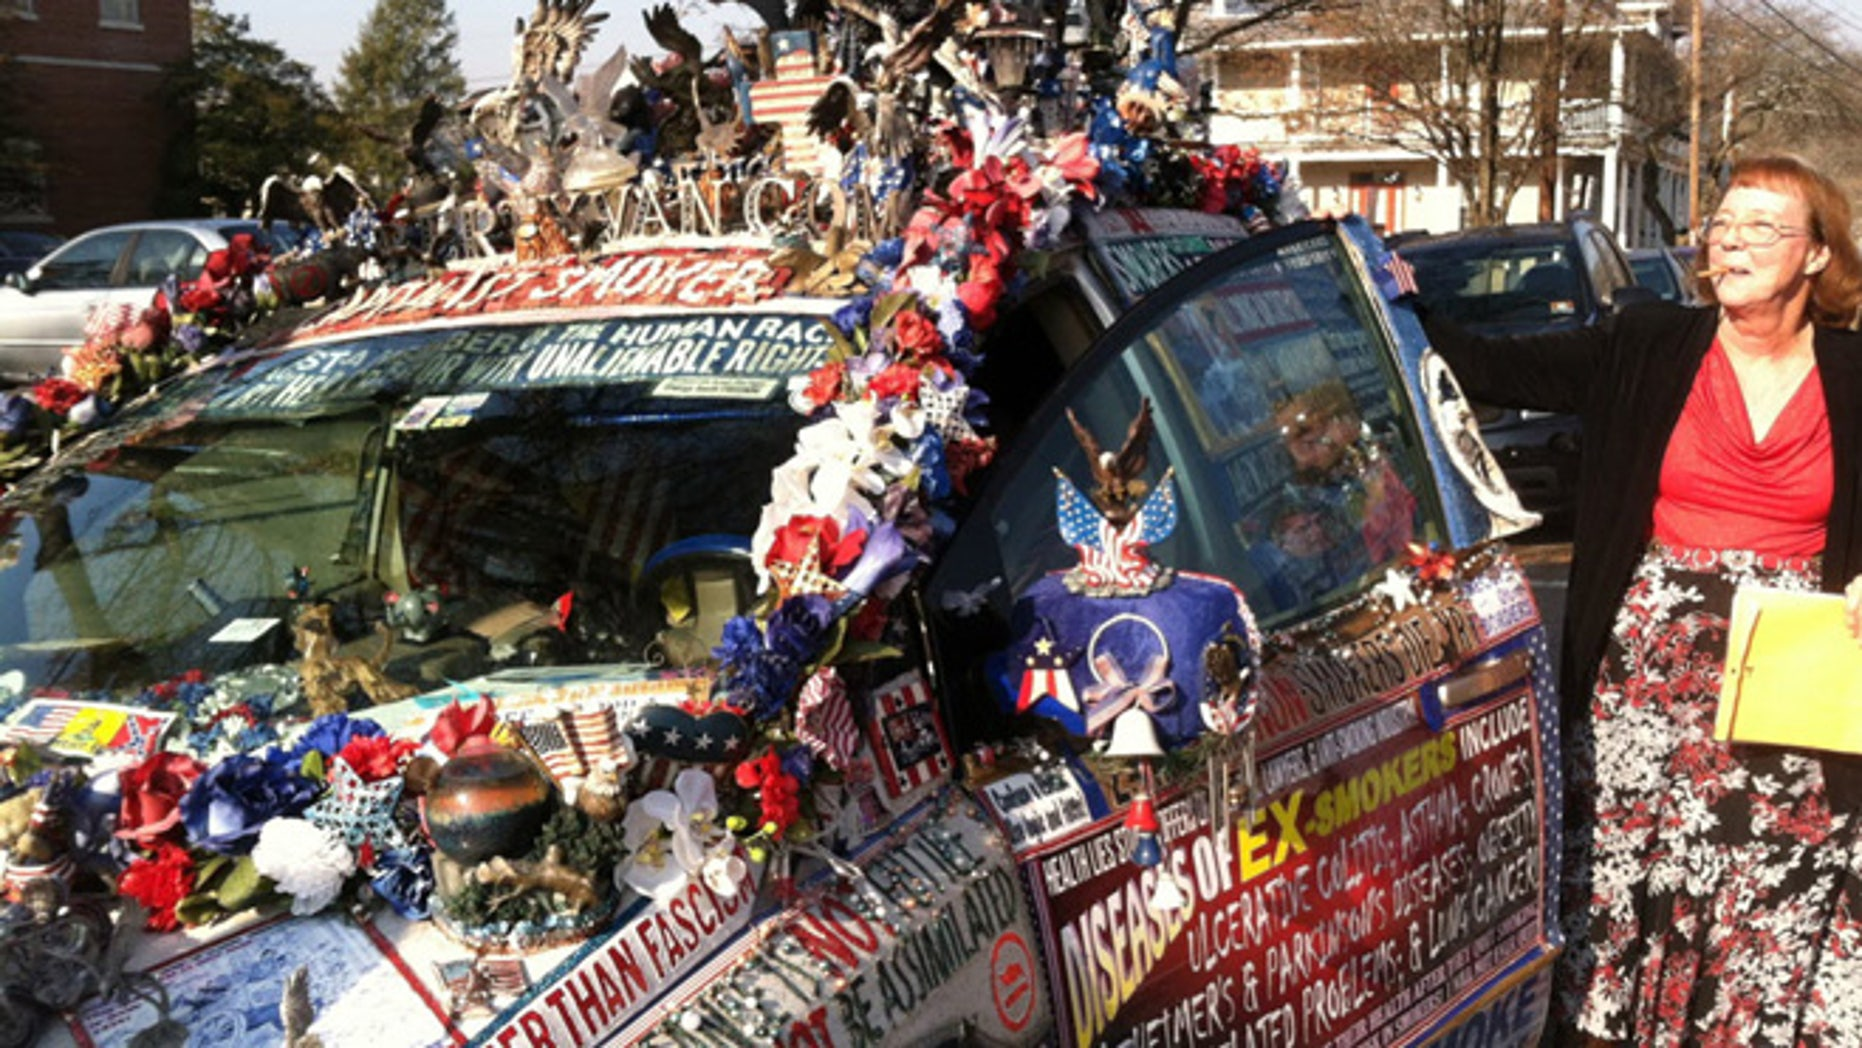 """Dec. 2, 2013: Smoking and guns advocate Lynda Farley stands outside her minivan, dubbed the """"Liberty Van"""" in Belvidere, N.J. Farley, 62, of Edmonton, Ky., fought a $56 ticket issued in September 2012 by New Jersey State Police for having an obstructed view."""